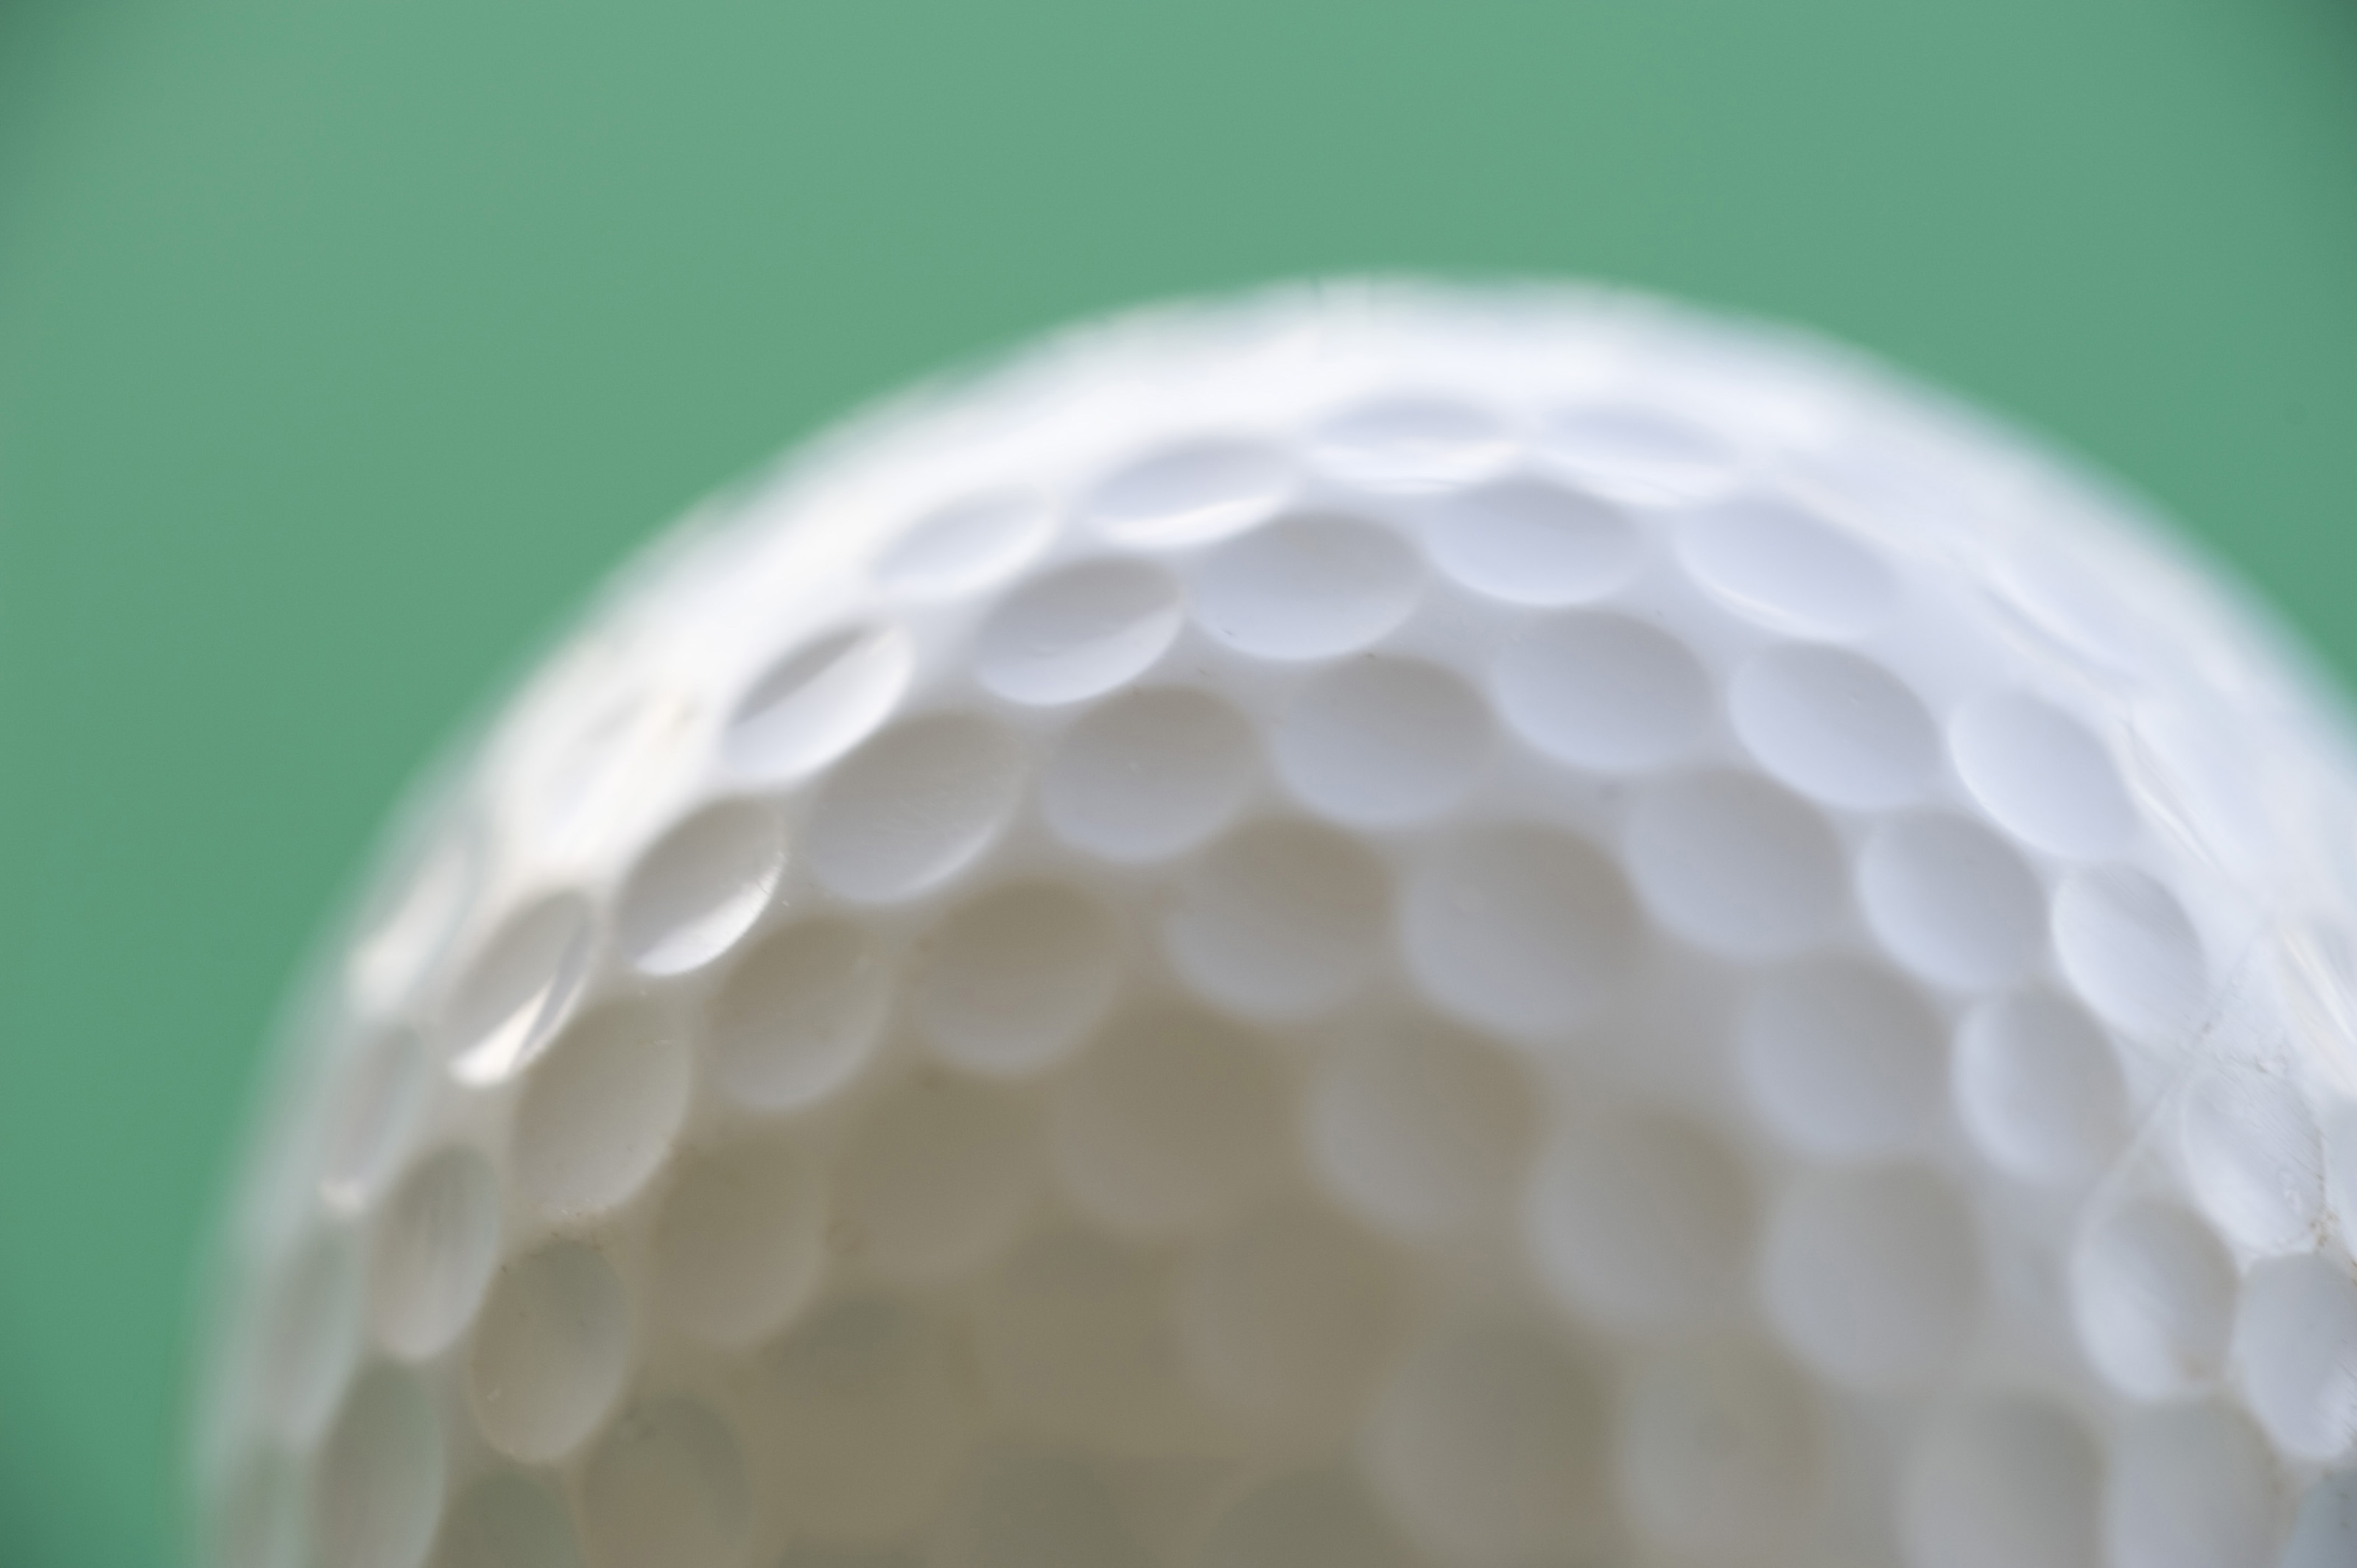 free image of golf ball dimples